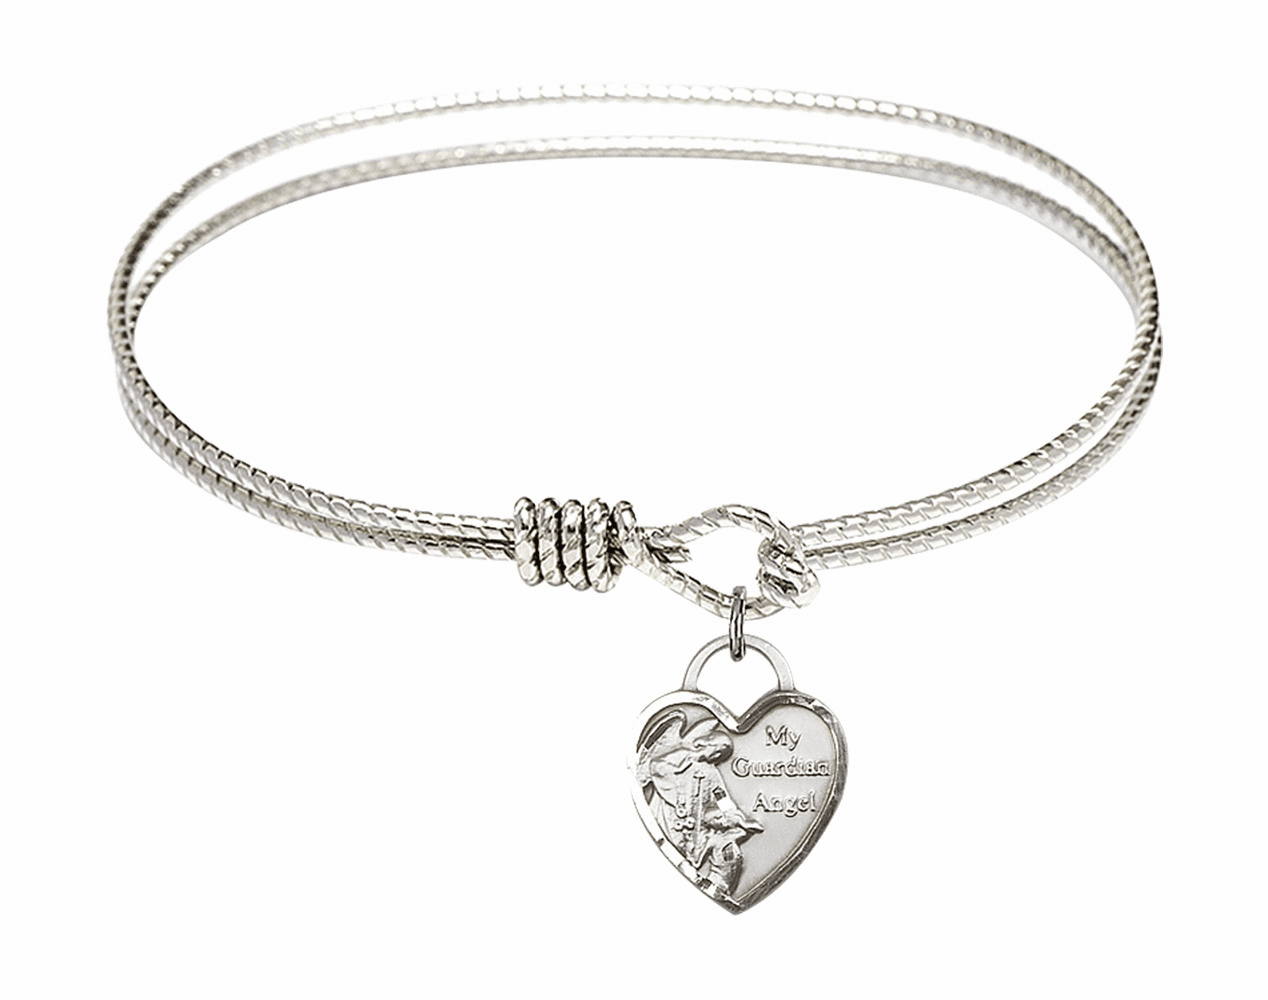 Round Twist Eye Hook Bangle Bracelet w/Heart My Guardian Angel Sterling Silver Charm by Bliss Mfg